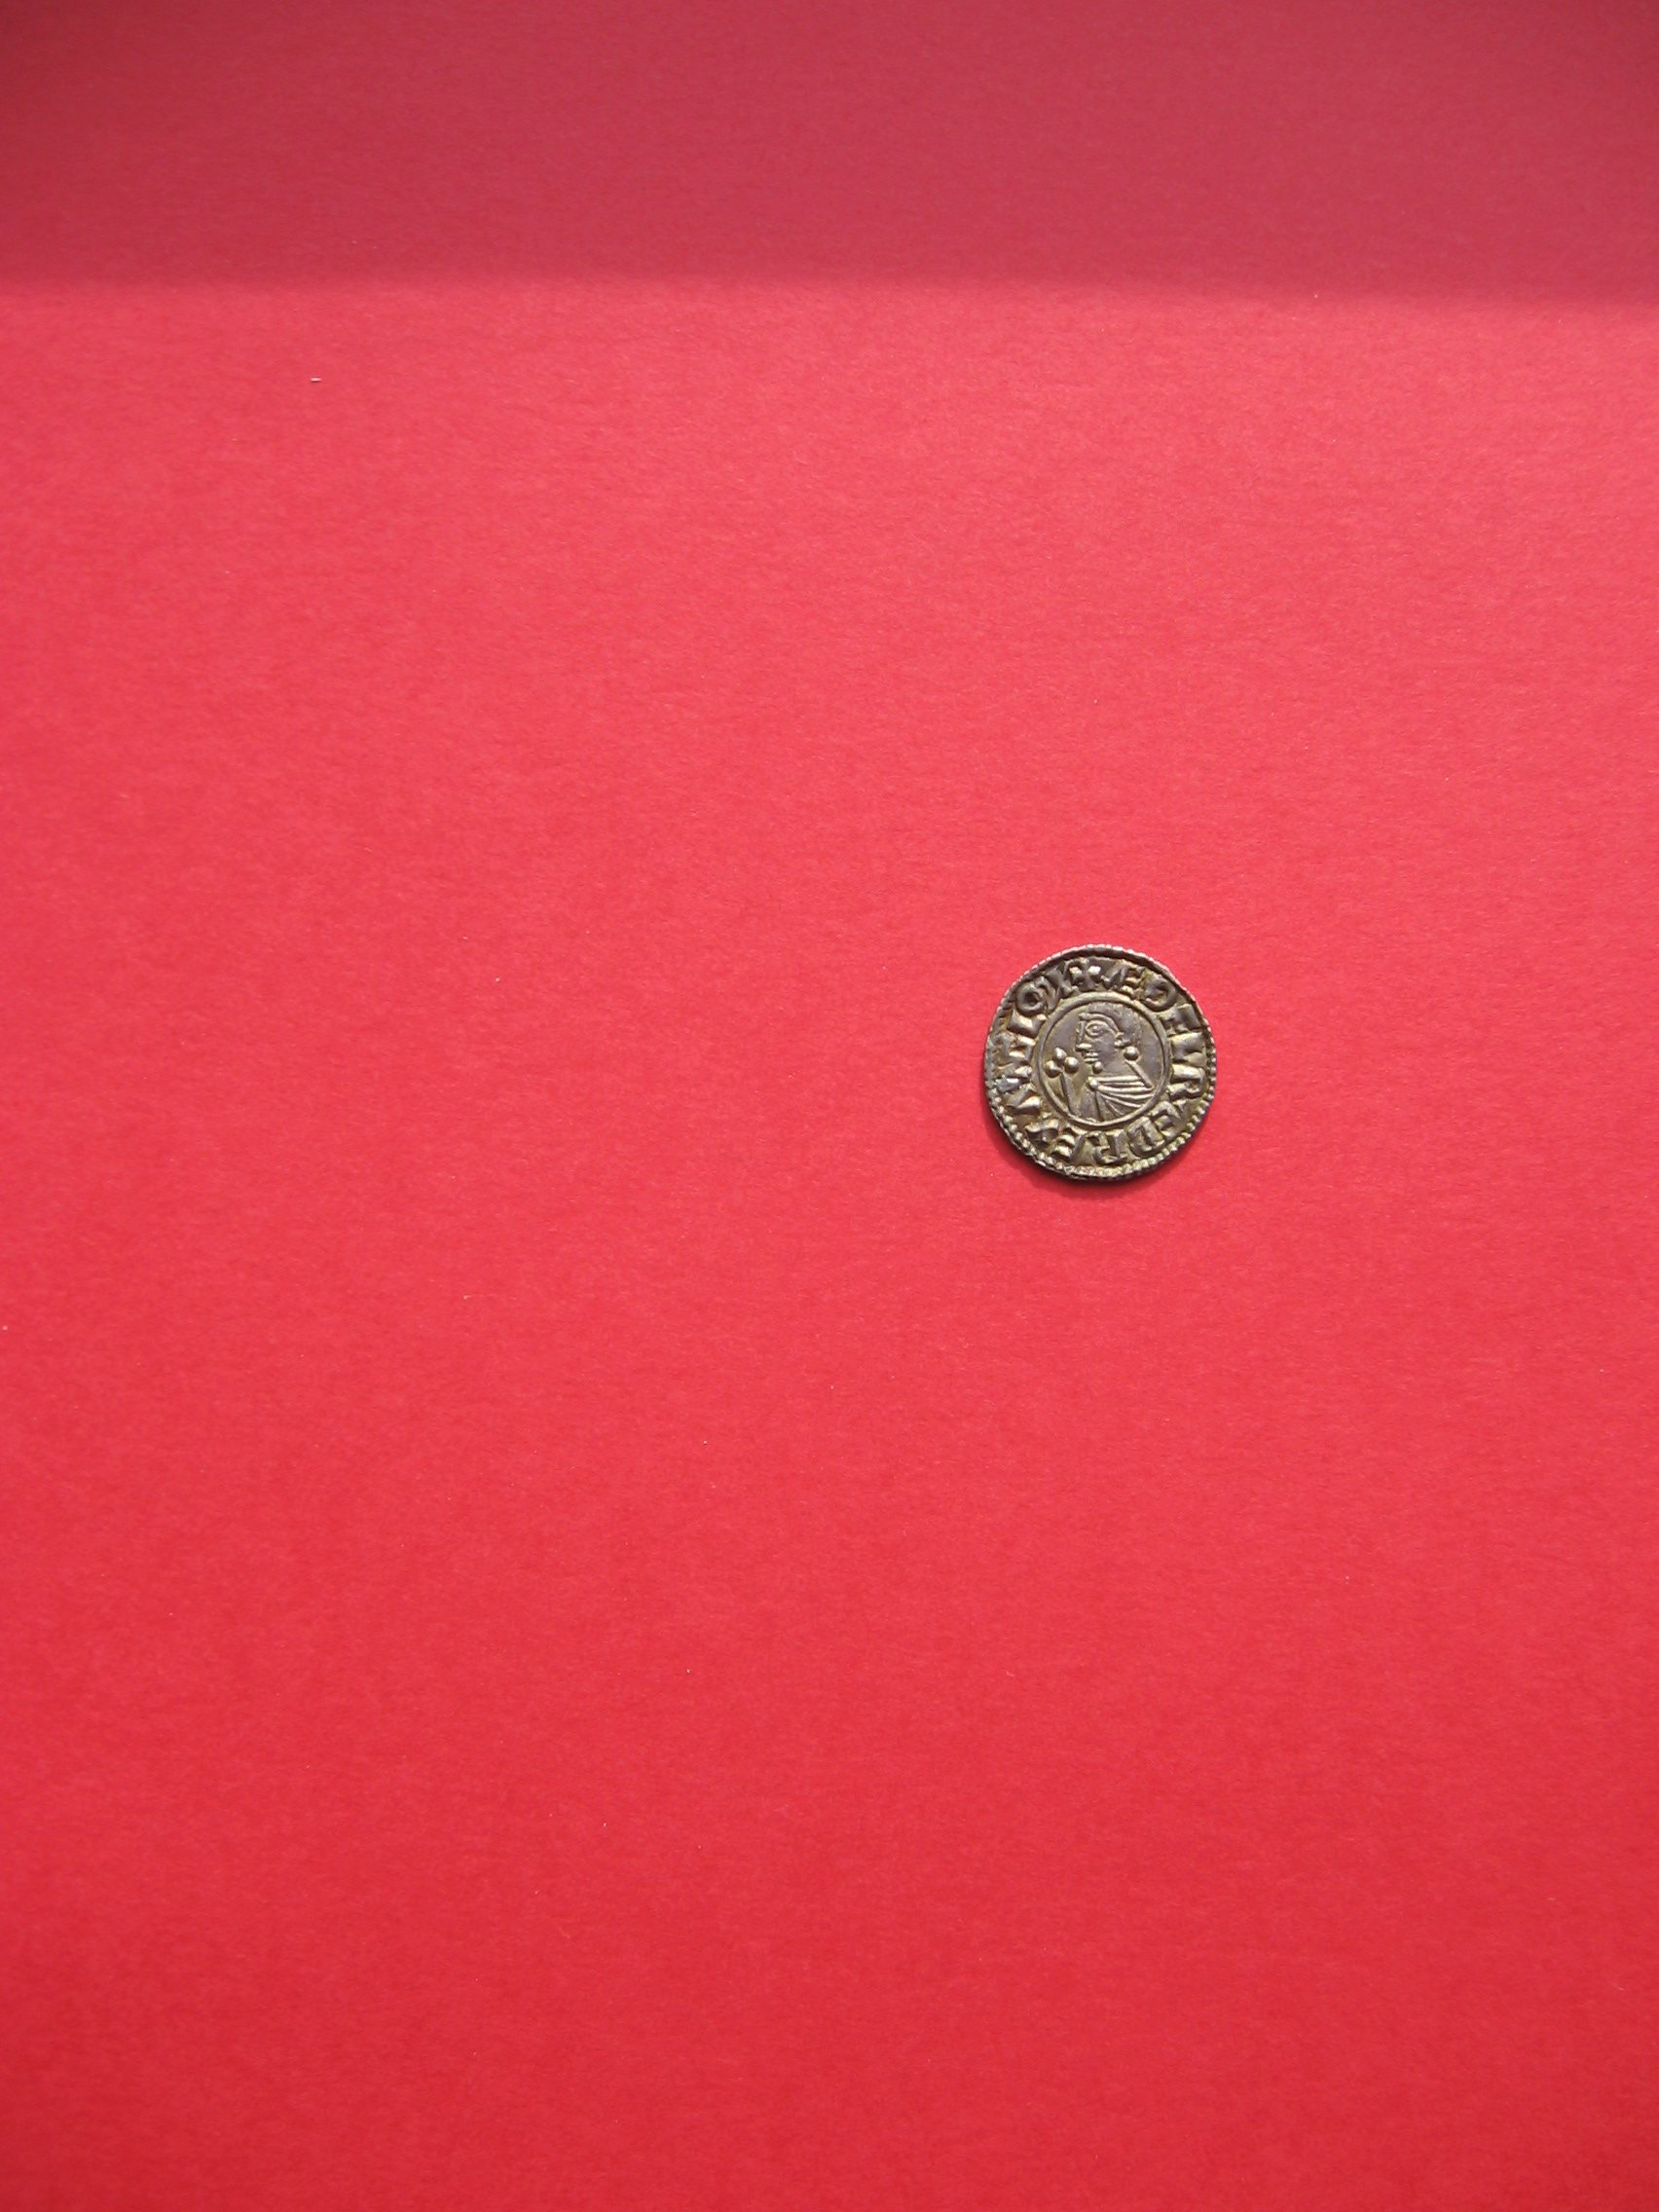 viking coin aethelred